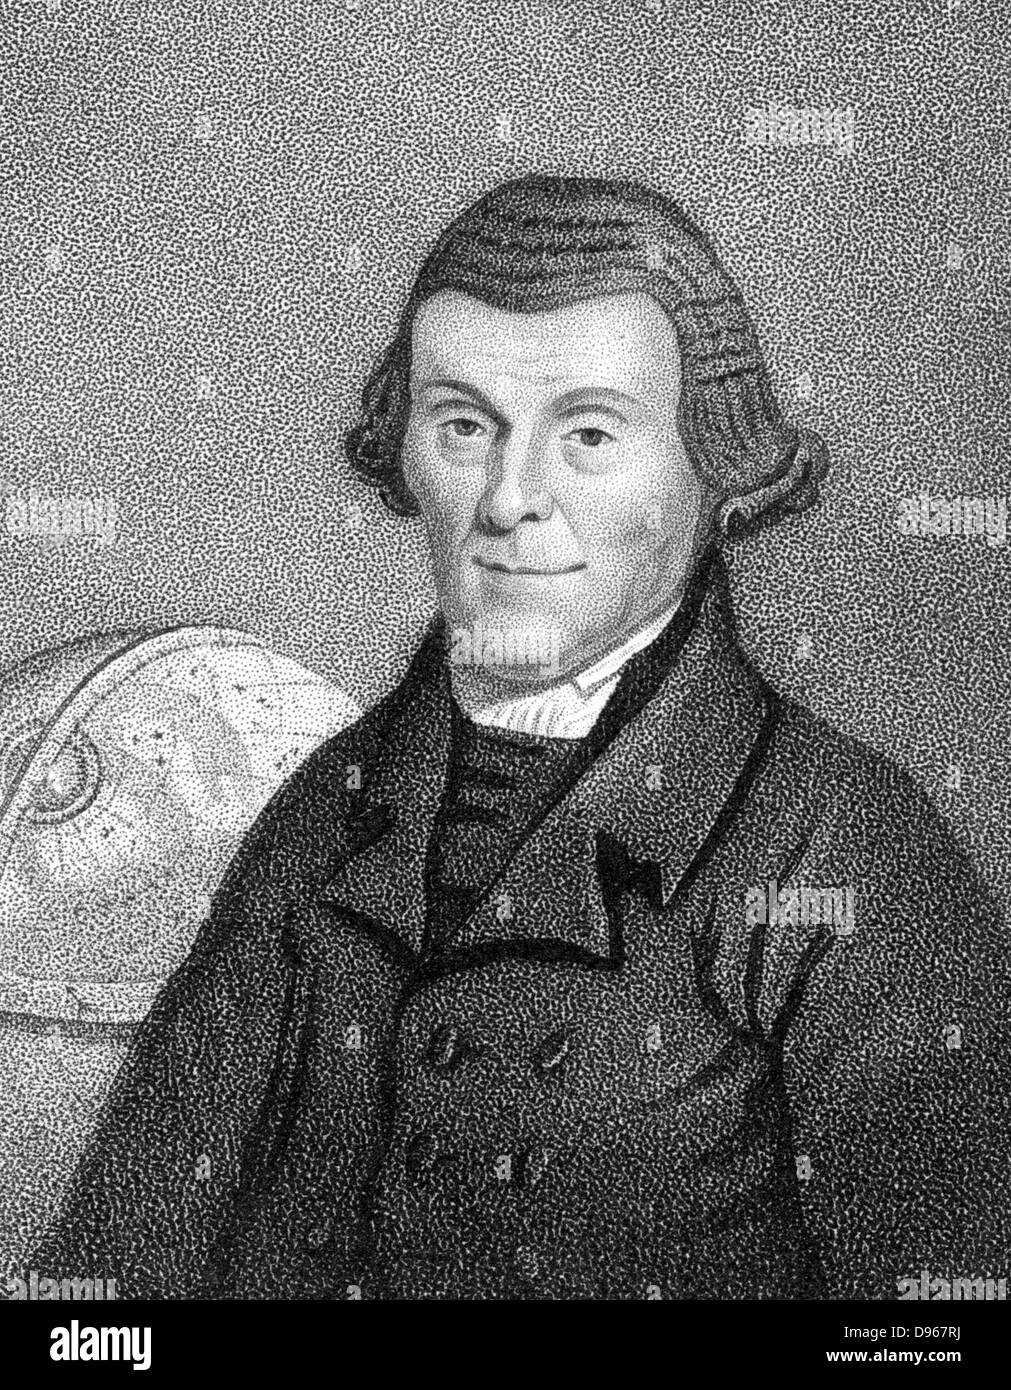 Henry Andrews (1744-1820) English astronomical calculator, schoolmaster, author of 'Moore's Almanack'. - Stock Image